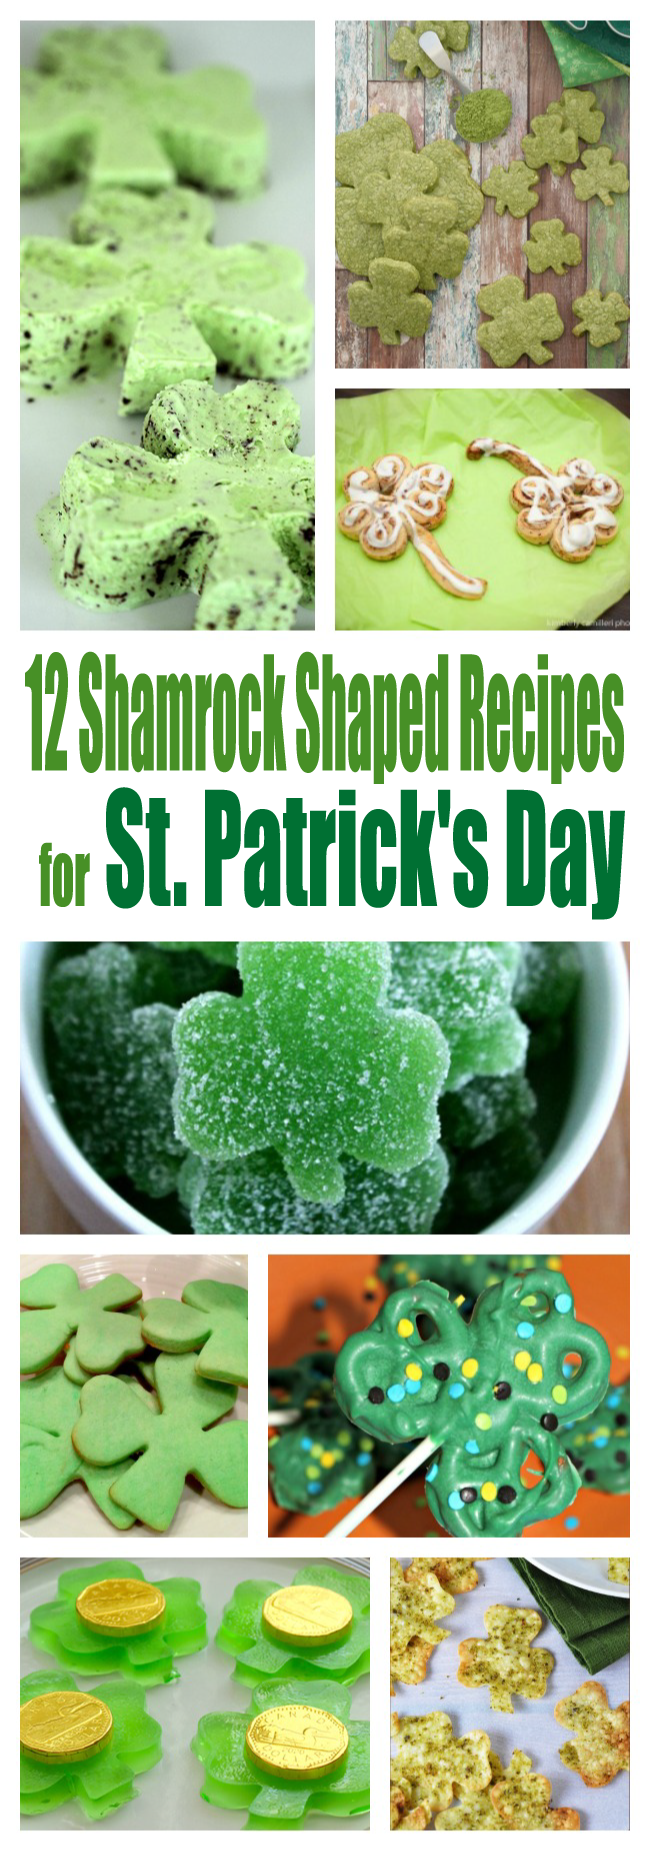 Okay now these are CUTE. Love these shamrock shaped ideas for St. Patrick's Day. Recipes galore.